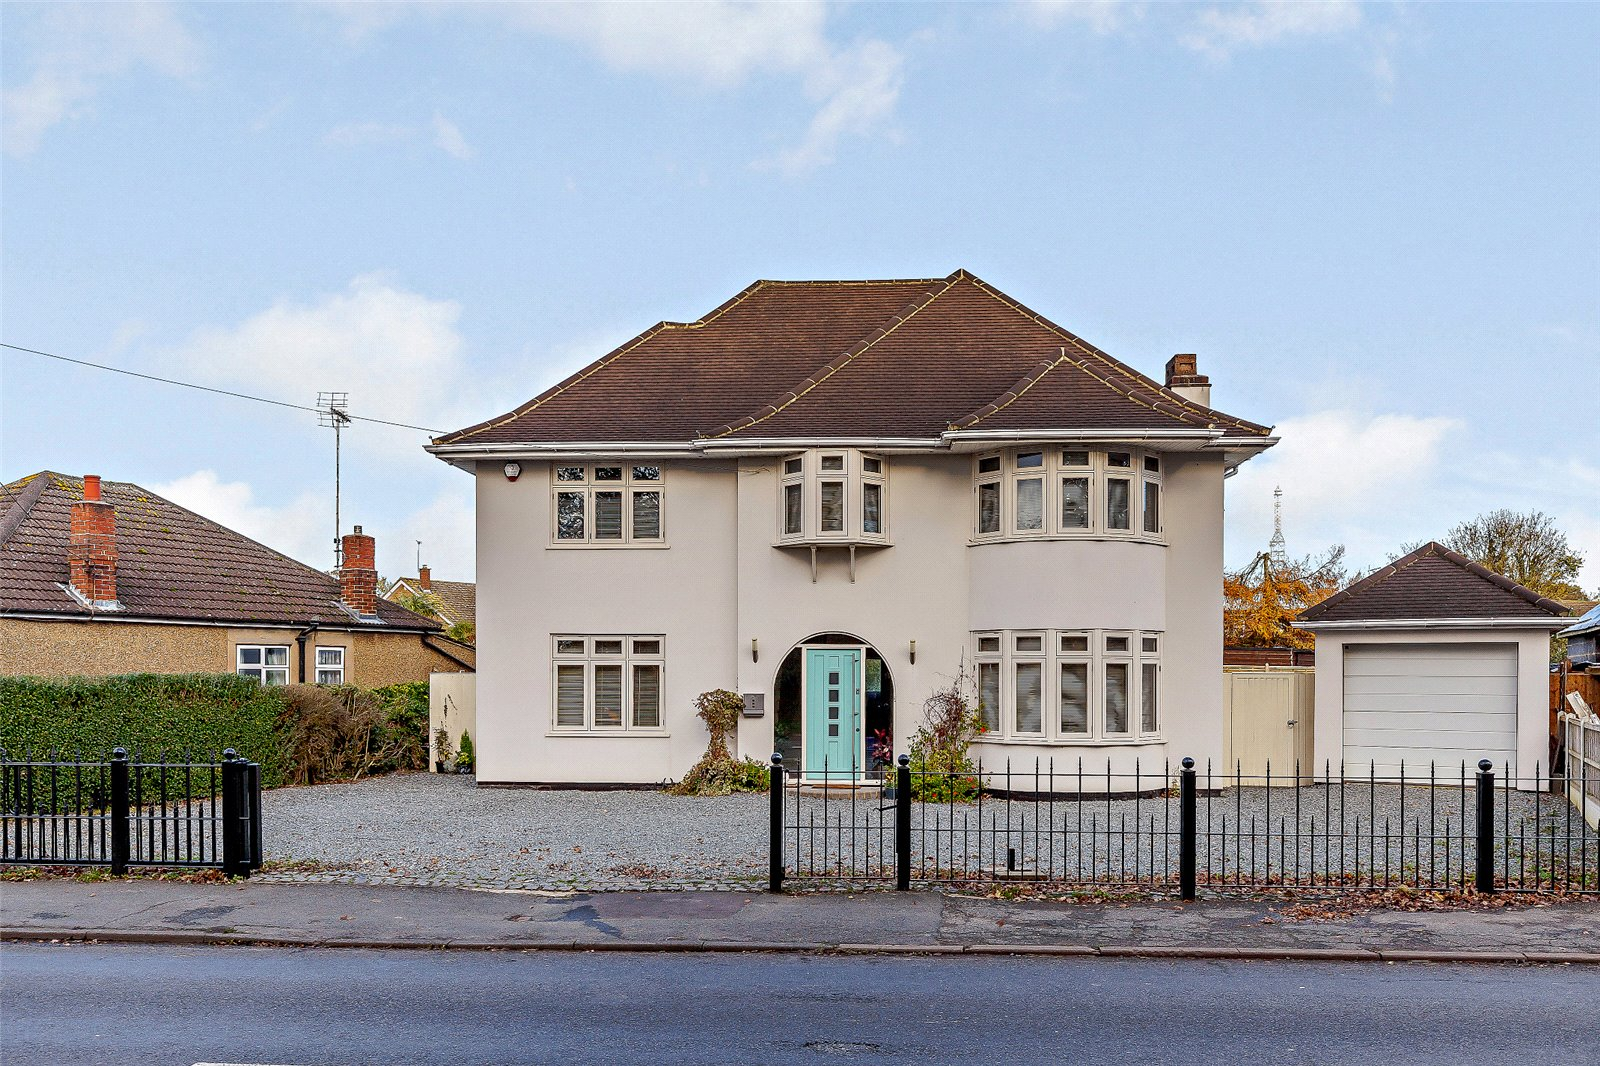 Ongar Road, Brentwood, Essex